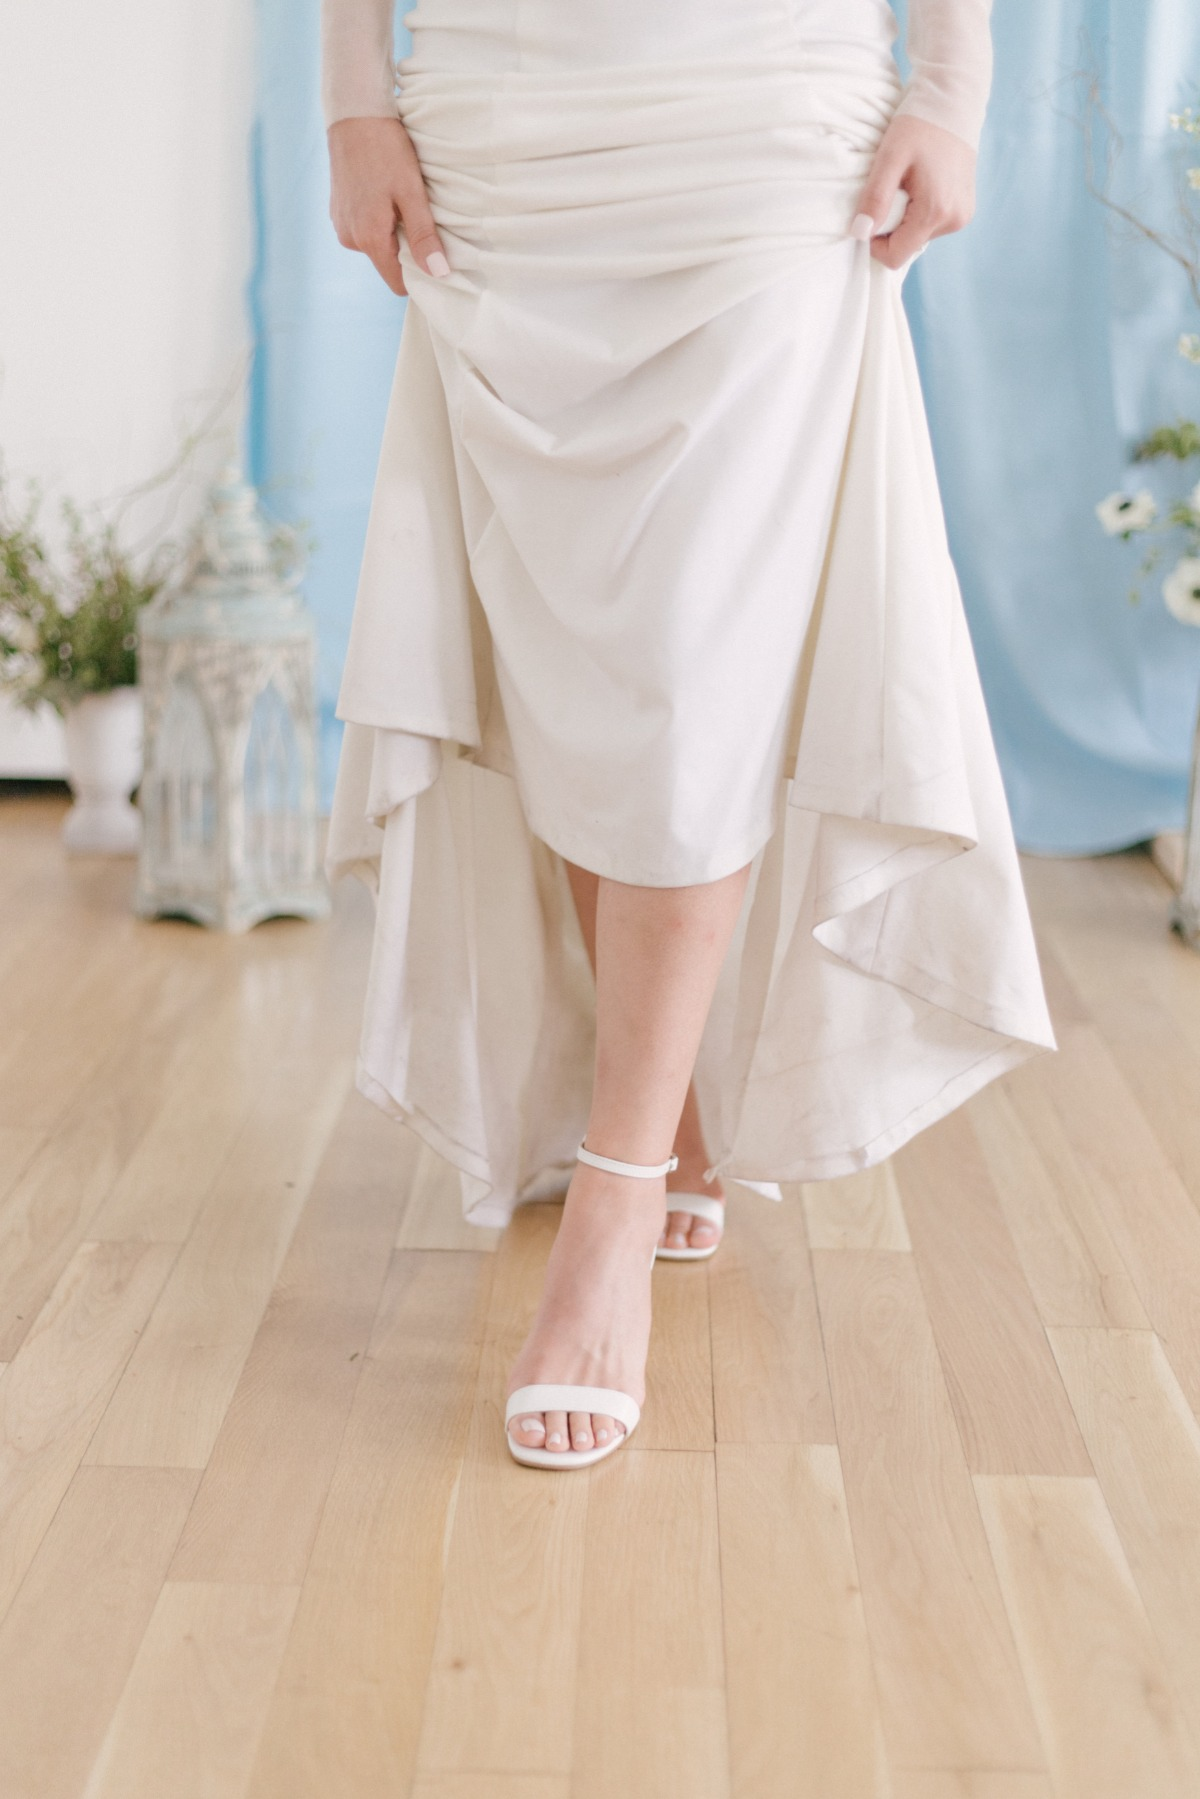 white strapy wedding shoes